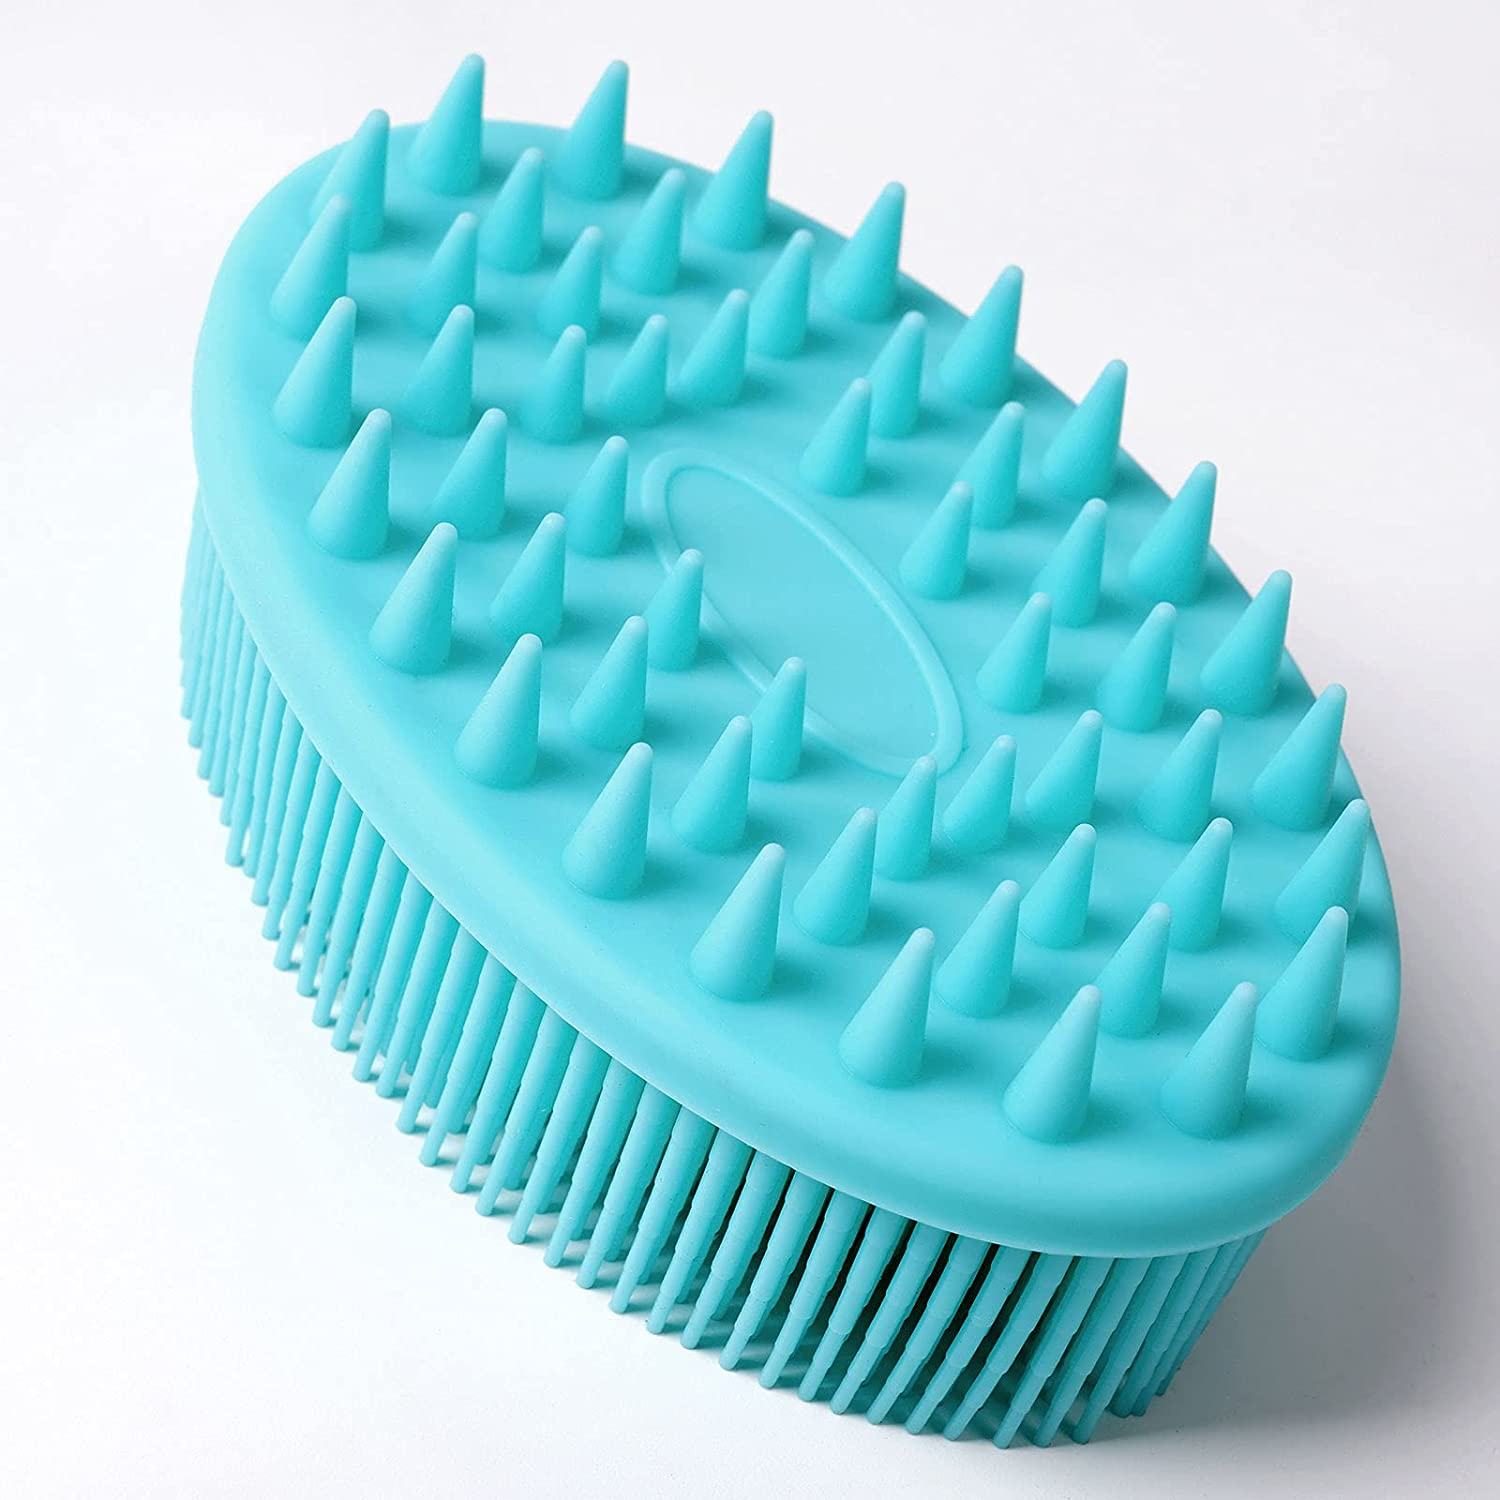 Silicone San Jose Mall Body Scrubber Bath Brush for Shower in Upgra Manufacturer regenerated product Use